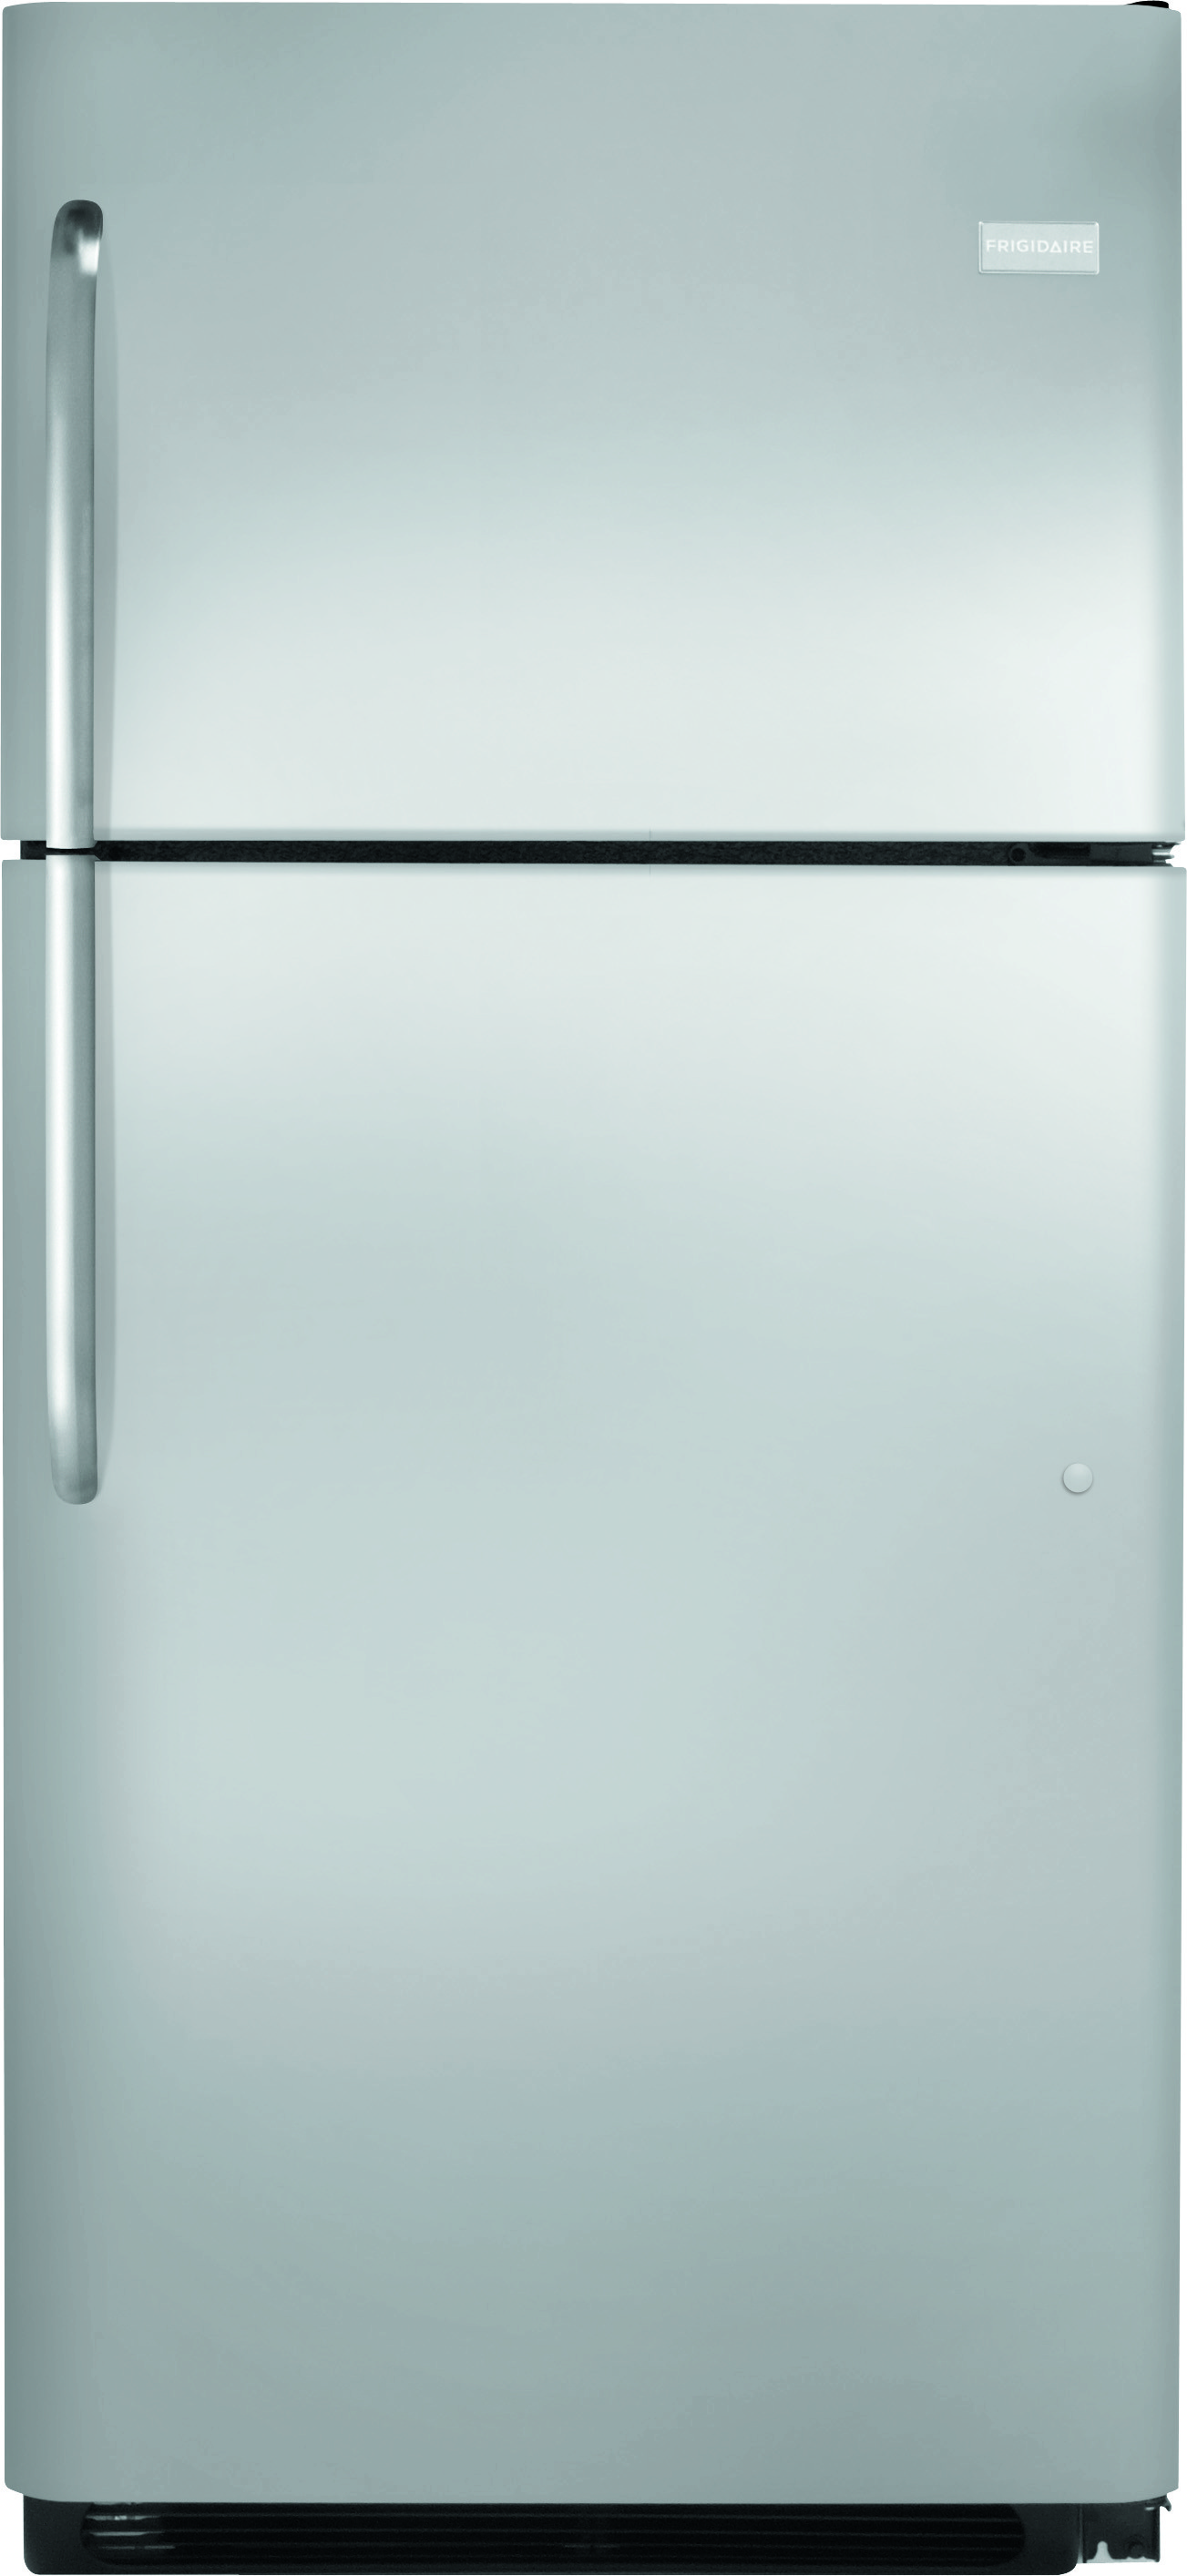 Frigidaire FFHT2021QS 30 Inch Top-Freezer Refrigerator with 20 cu ...